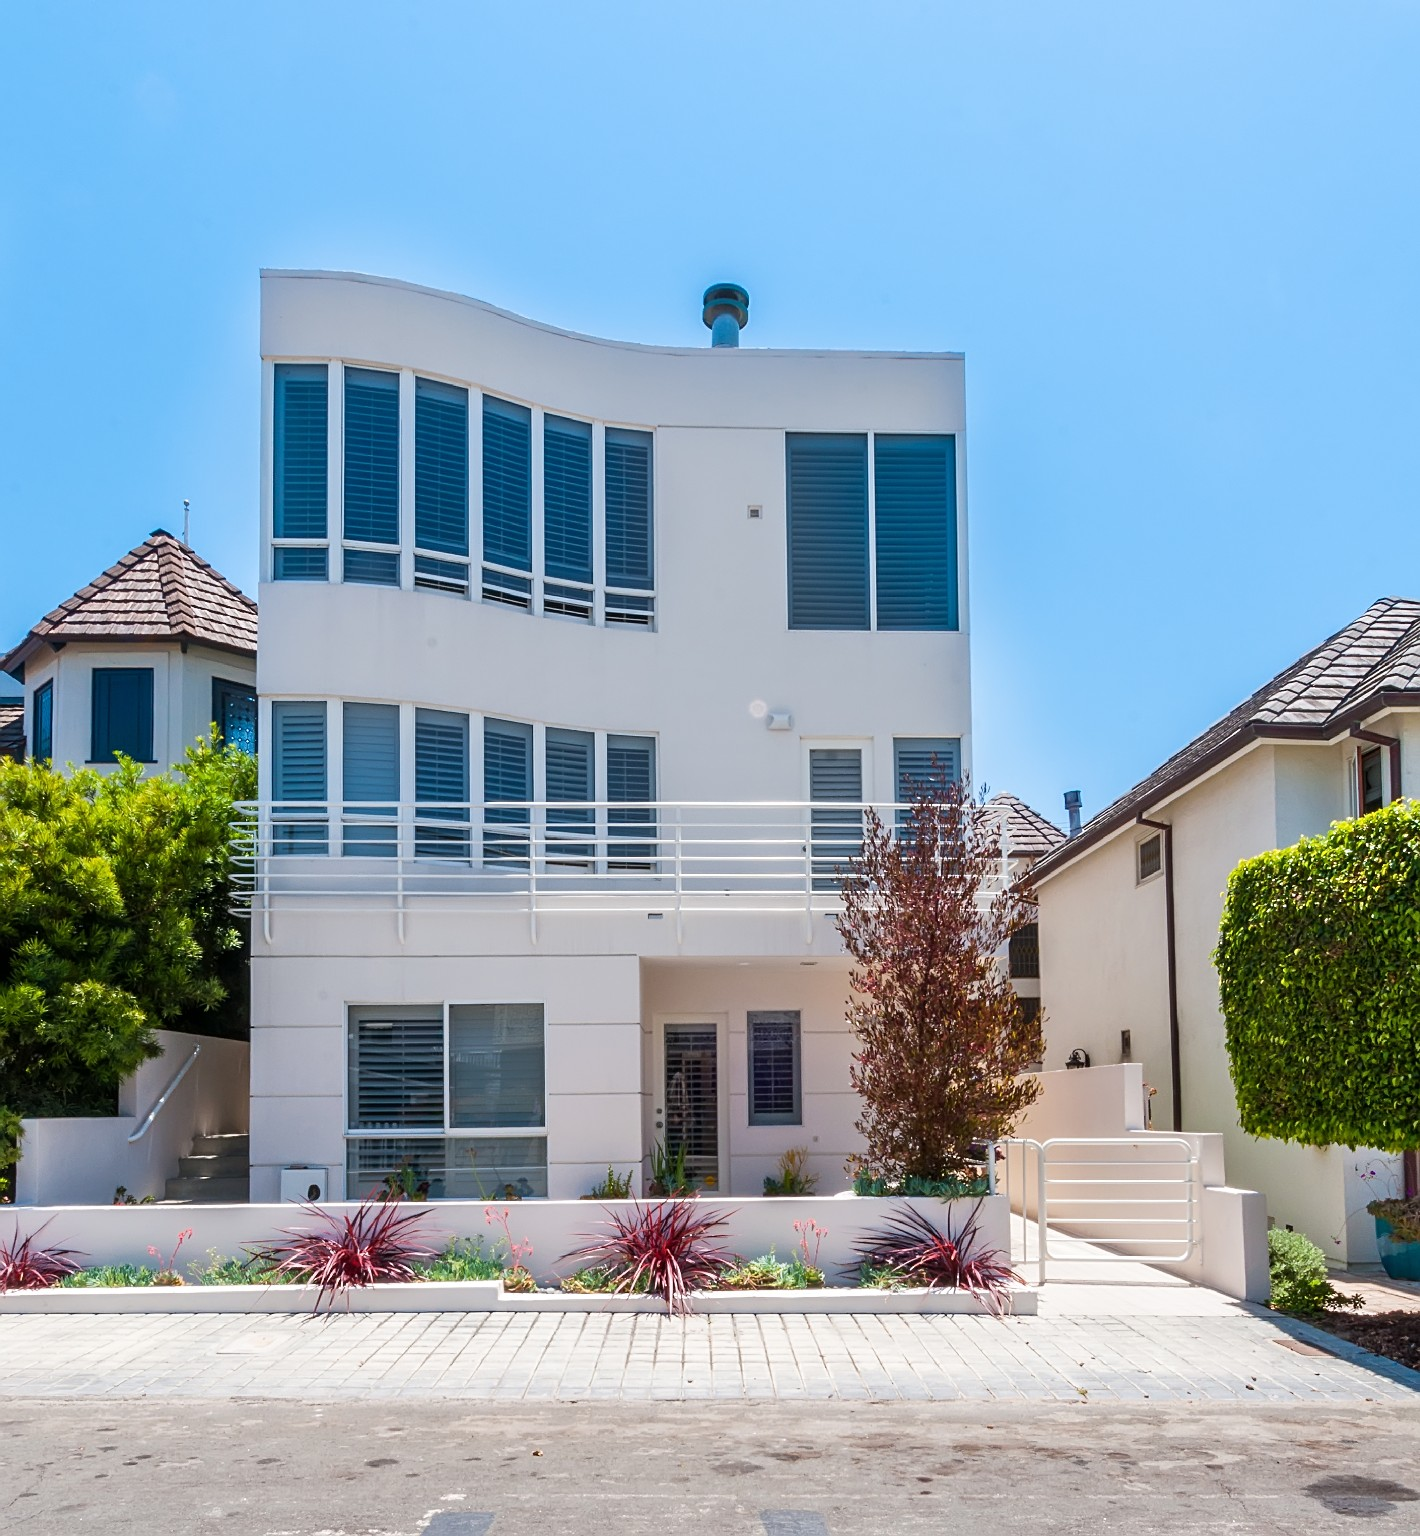 Single Family Home for Sale at 452 27th St, Manhattan Beach 90266 452 27th Street Manhattan Beach, California 90266 United States